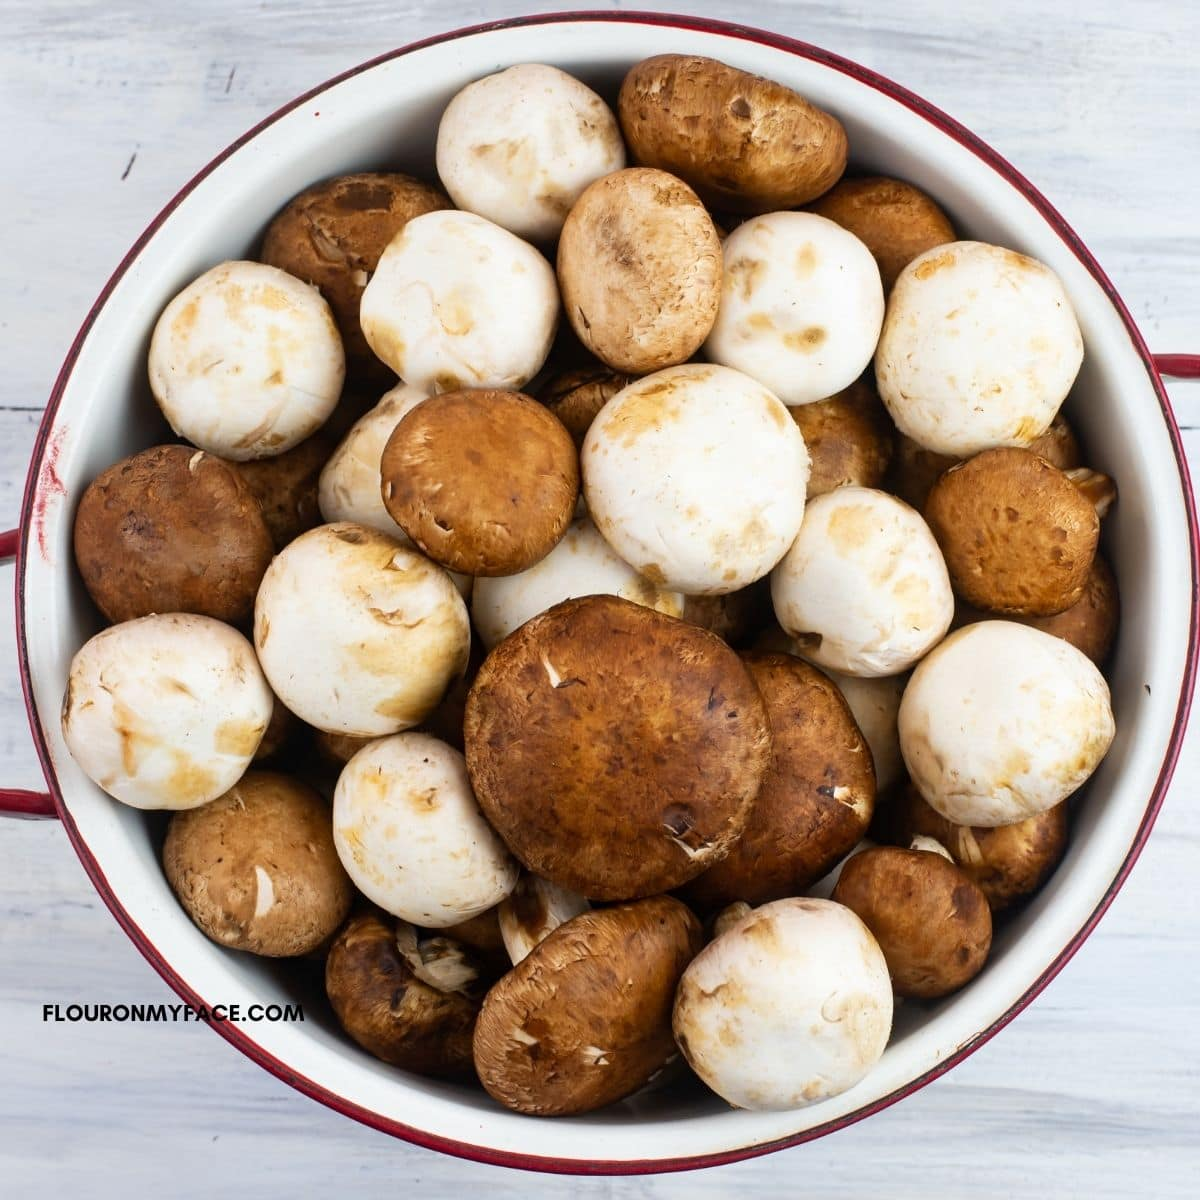 A white metal colander filled with white and baby portabella mushrooms.